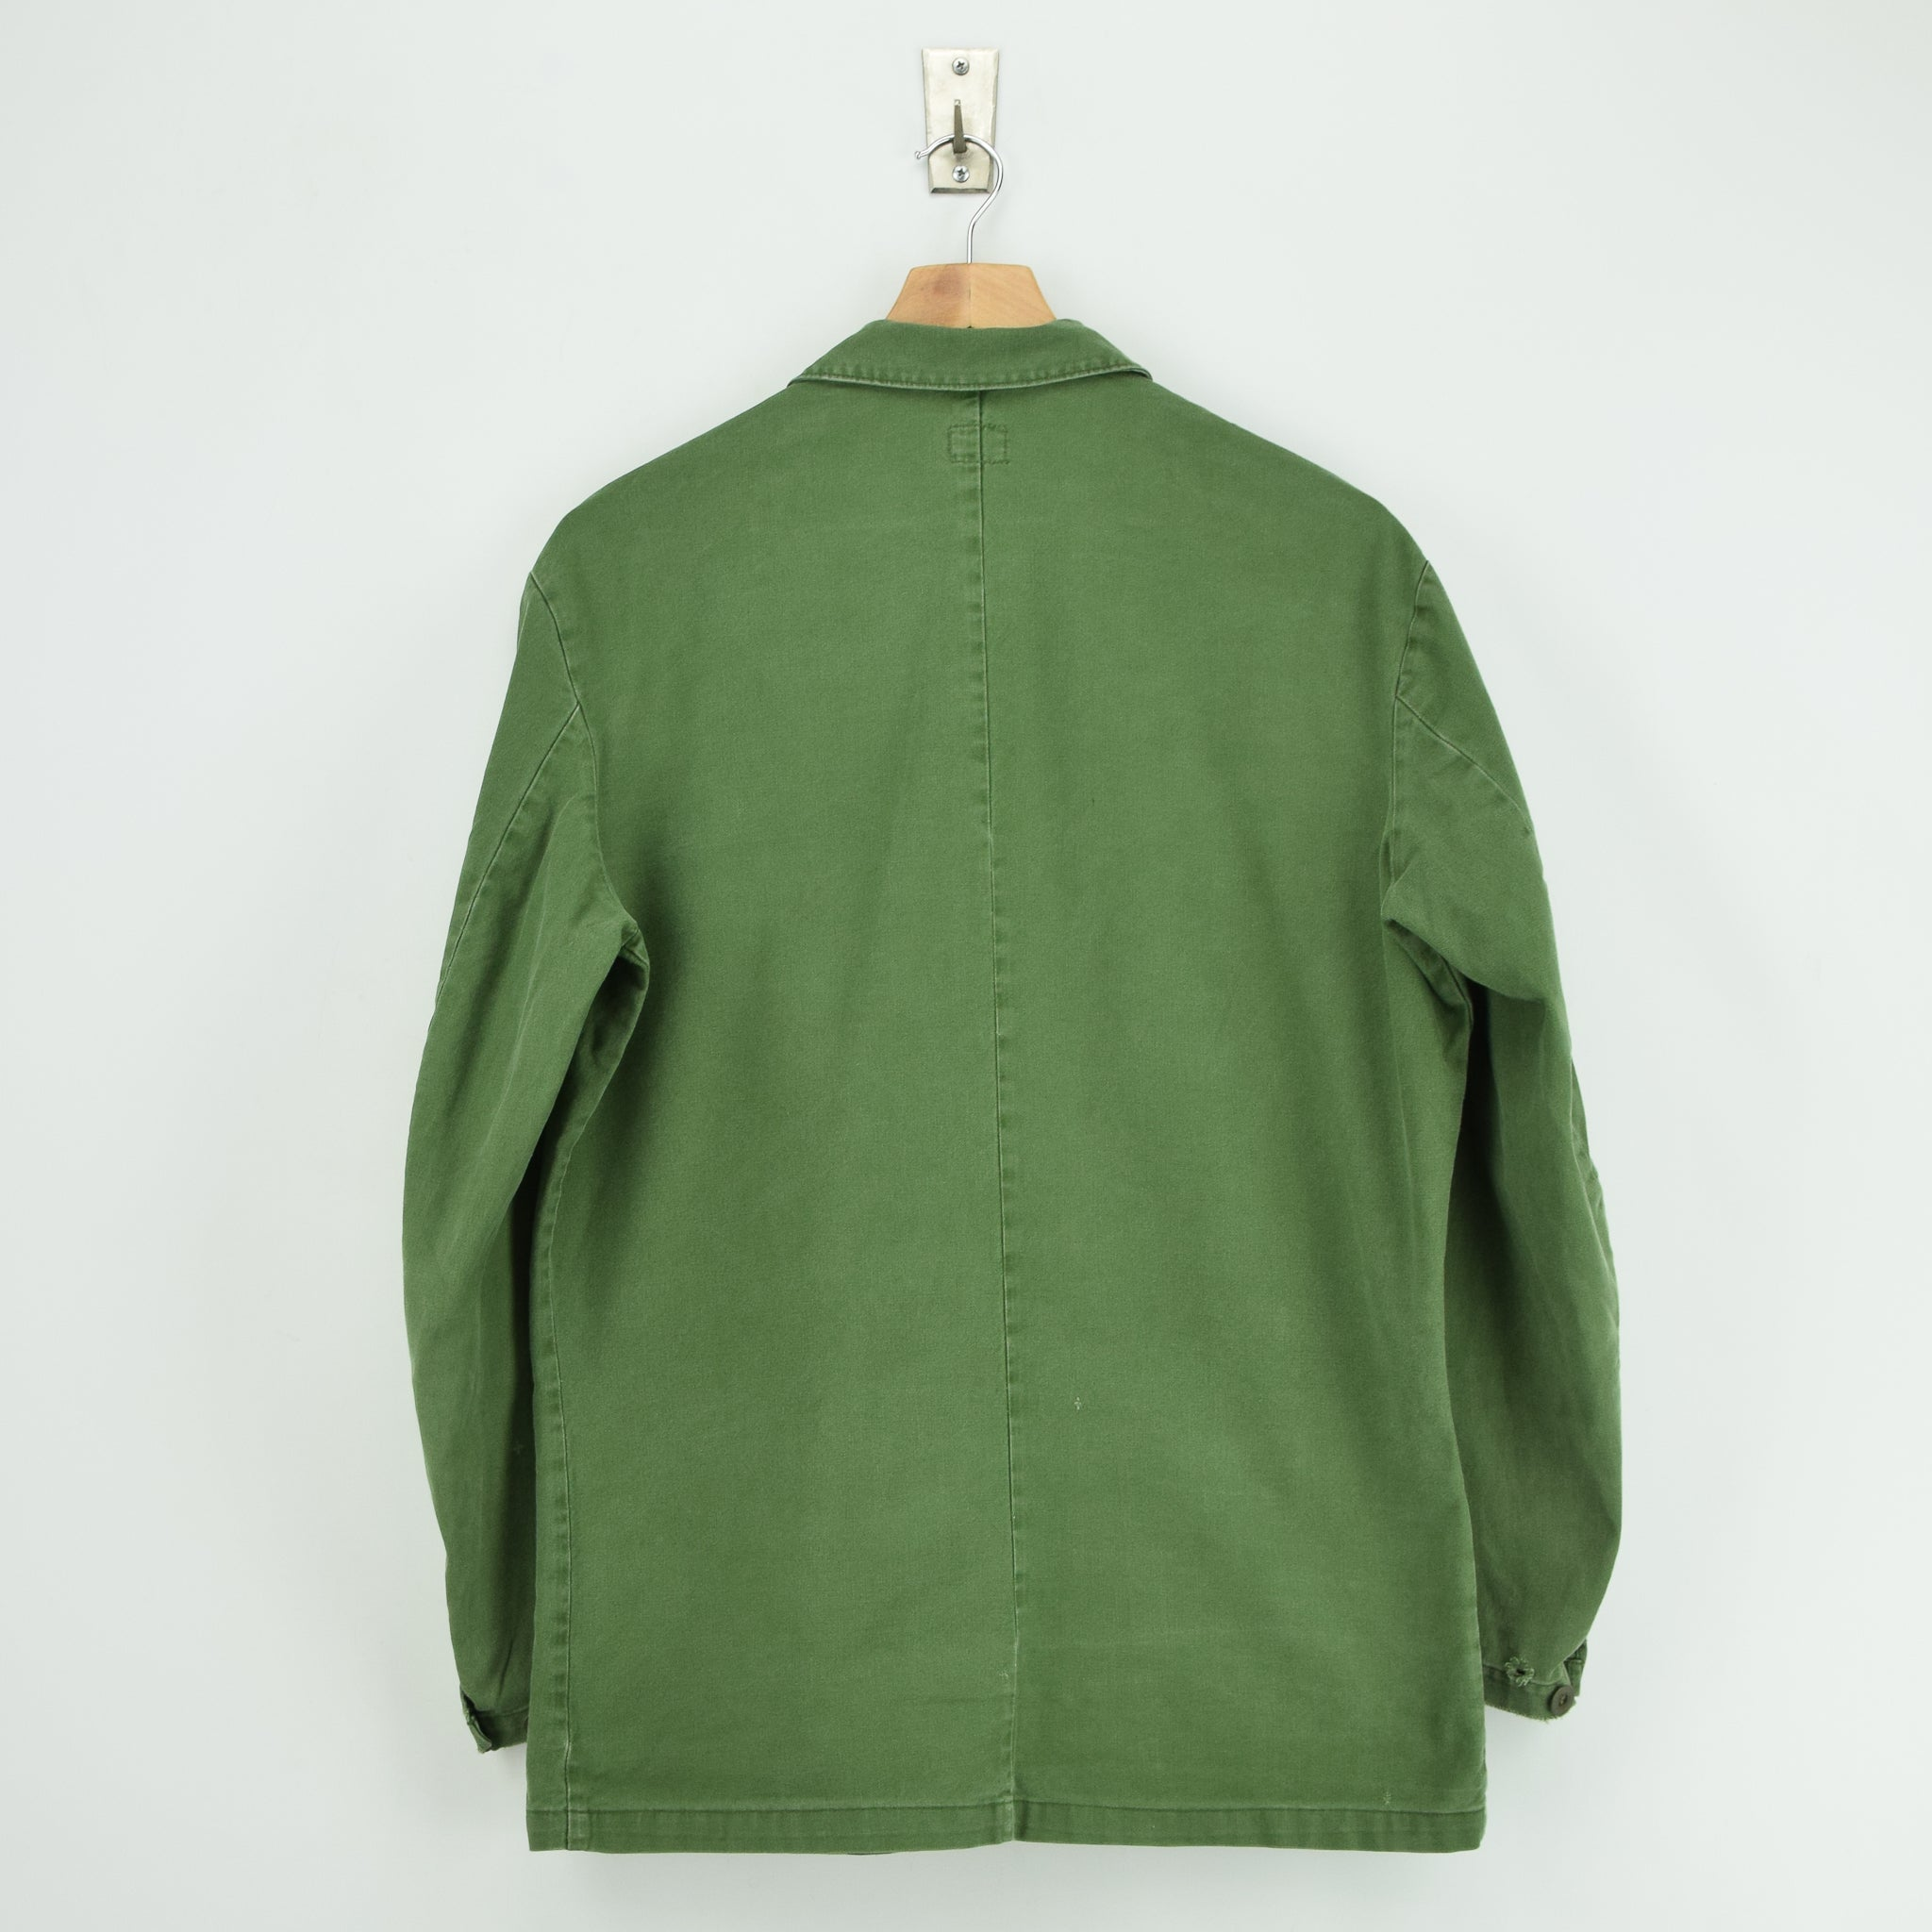 Vintage Swedish Worker Style Green Distressed Military Cotton Field Jacket M back